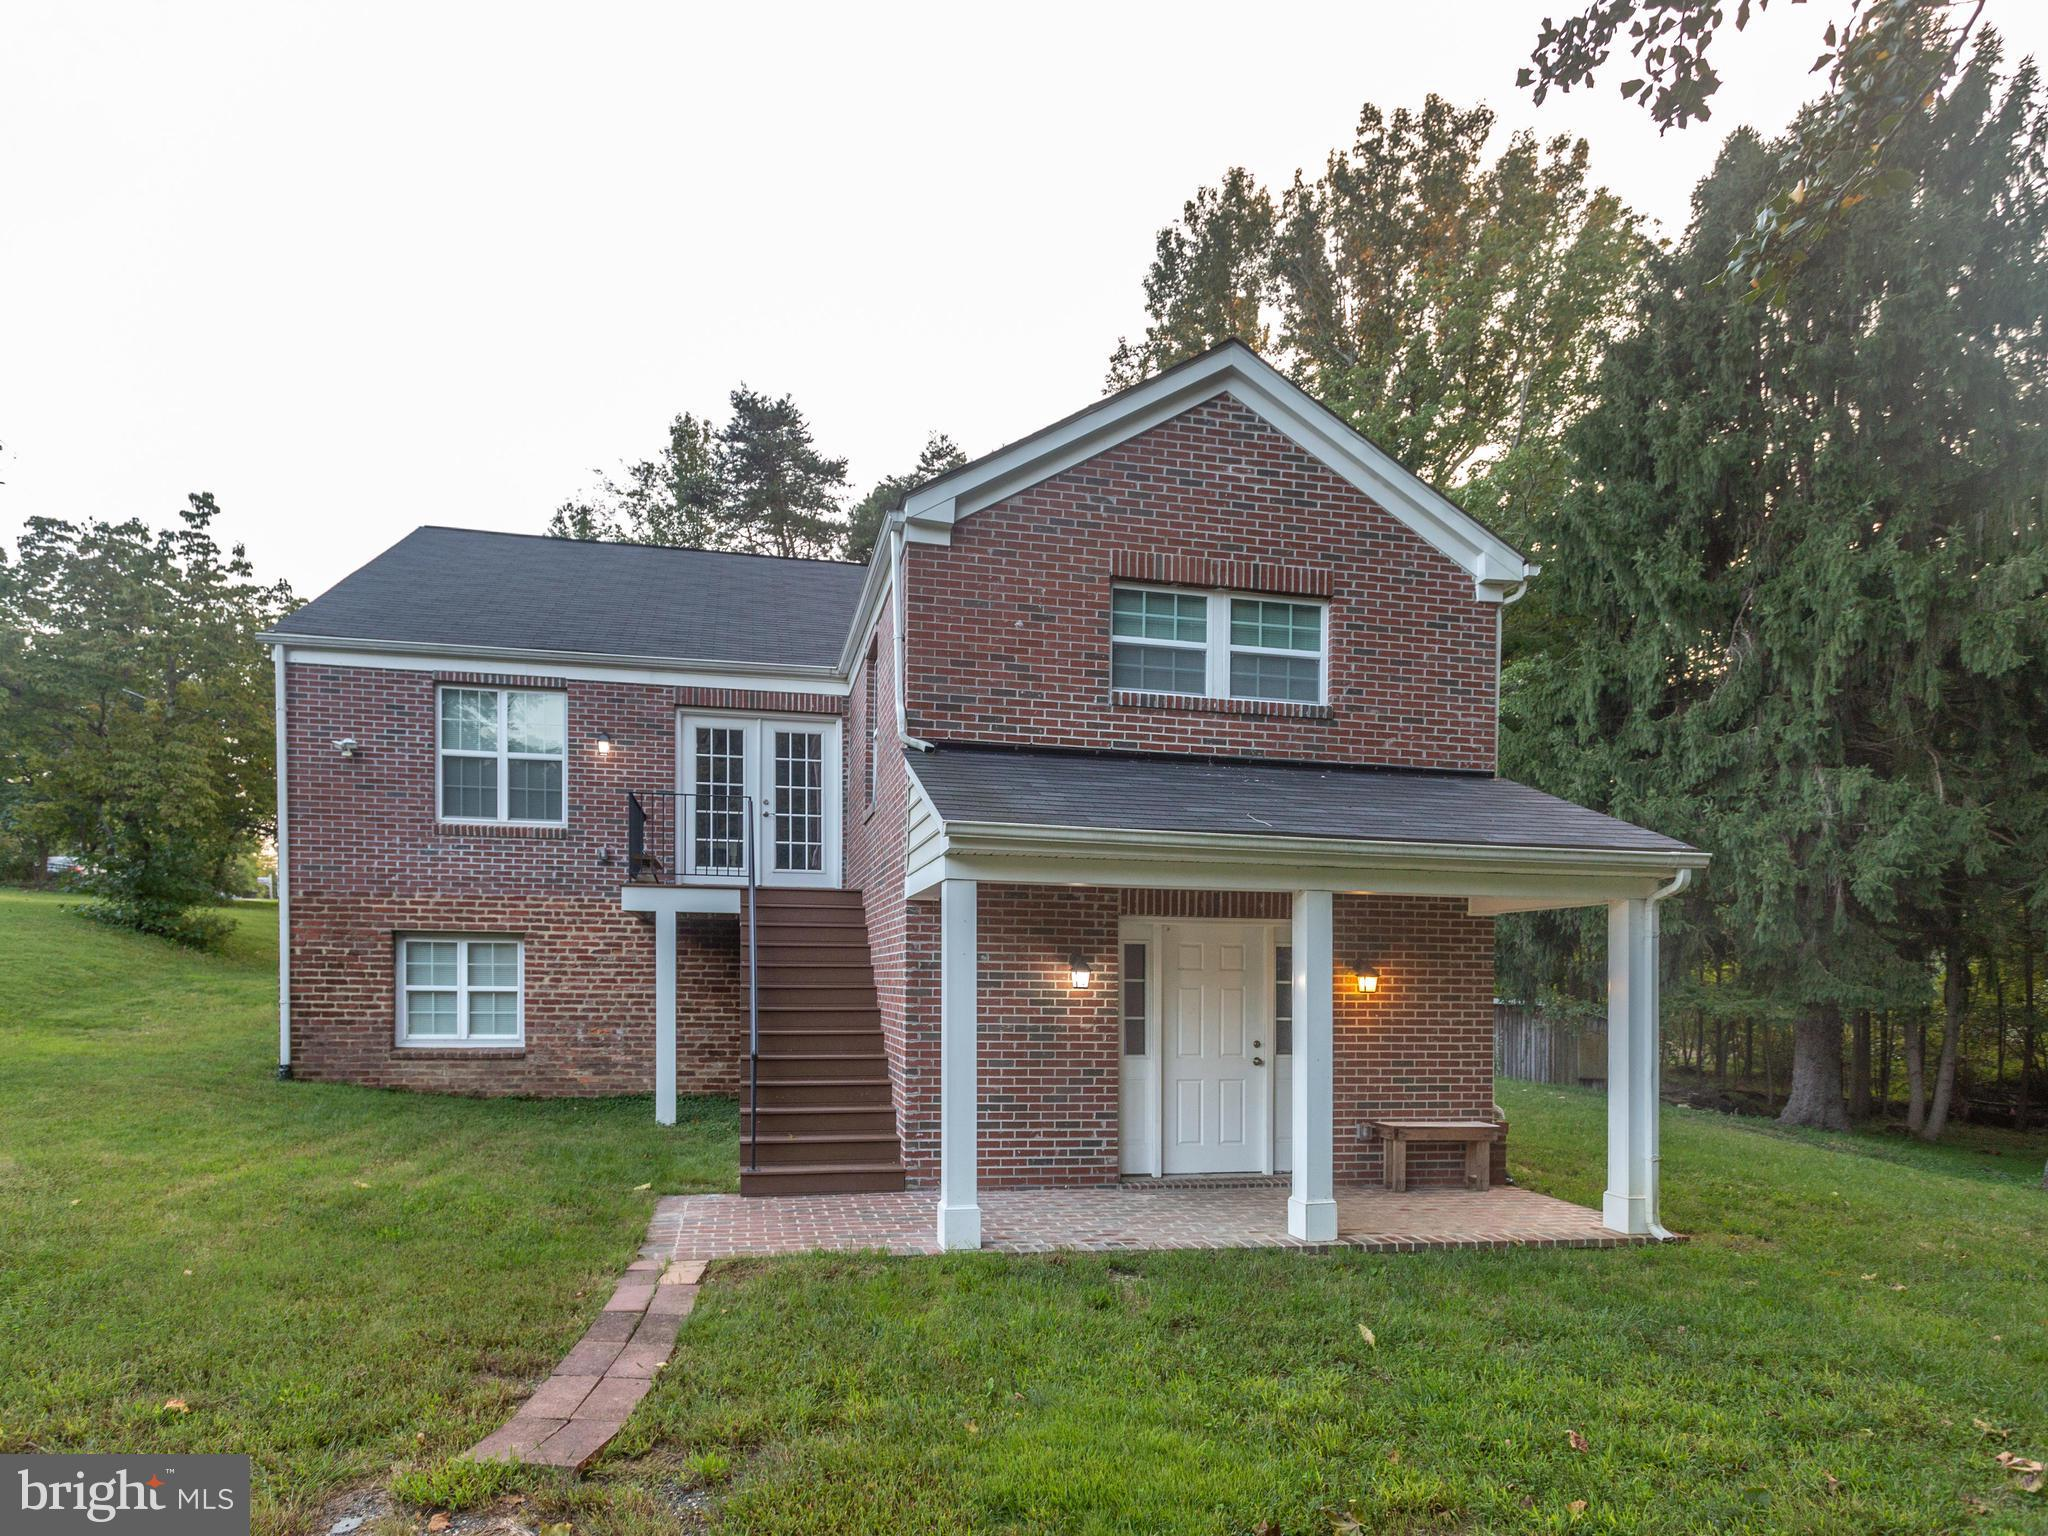 8511 TEMPLE HILL ROAD, TEMPLE HILLS, MD 20748